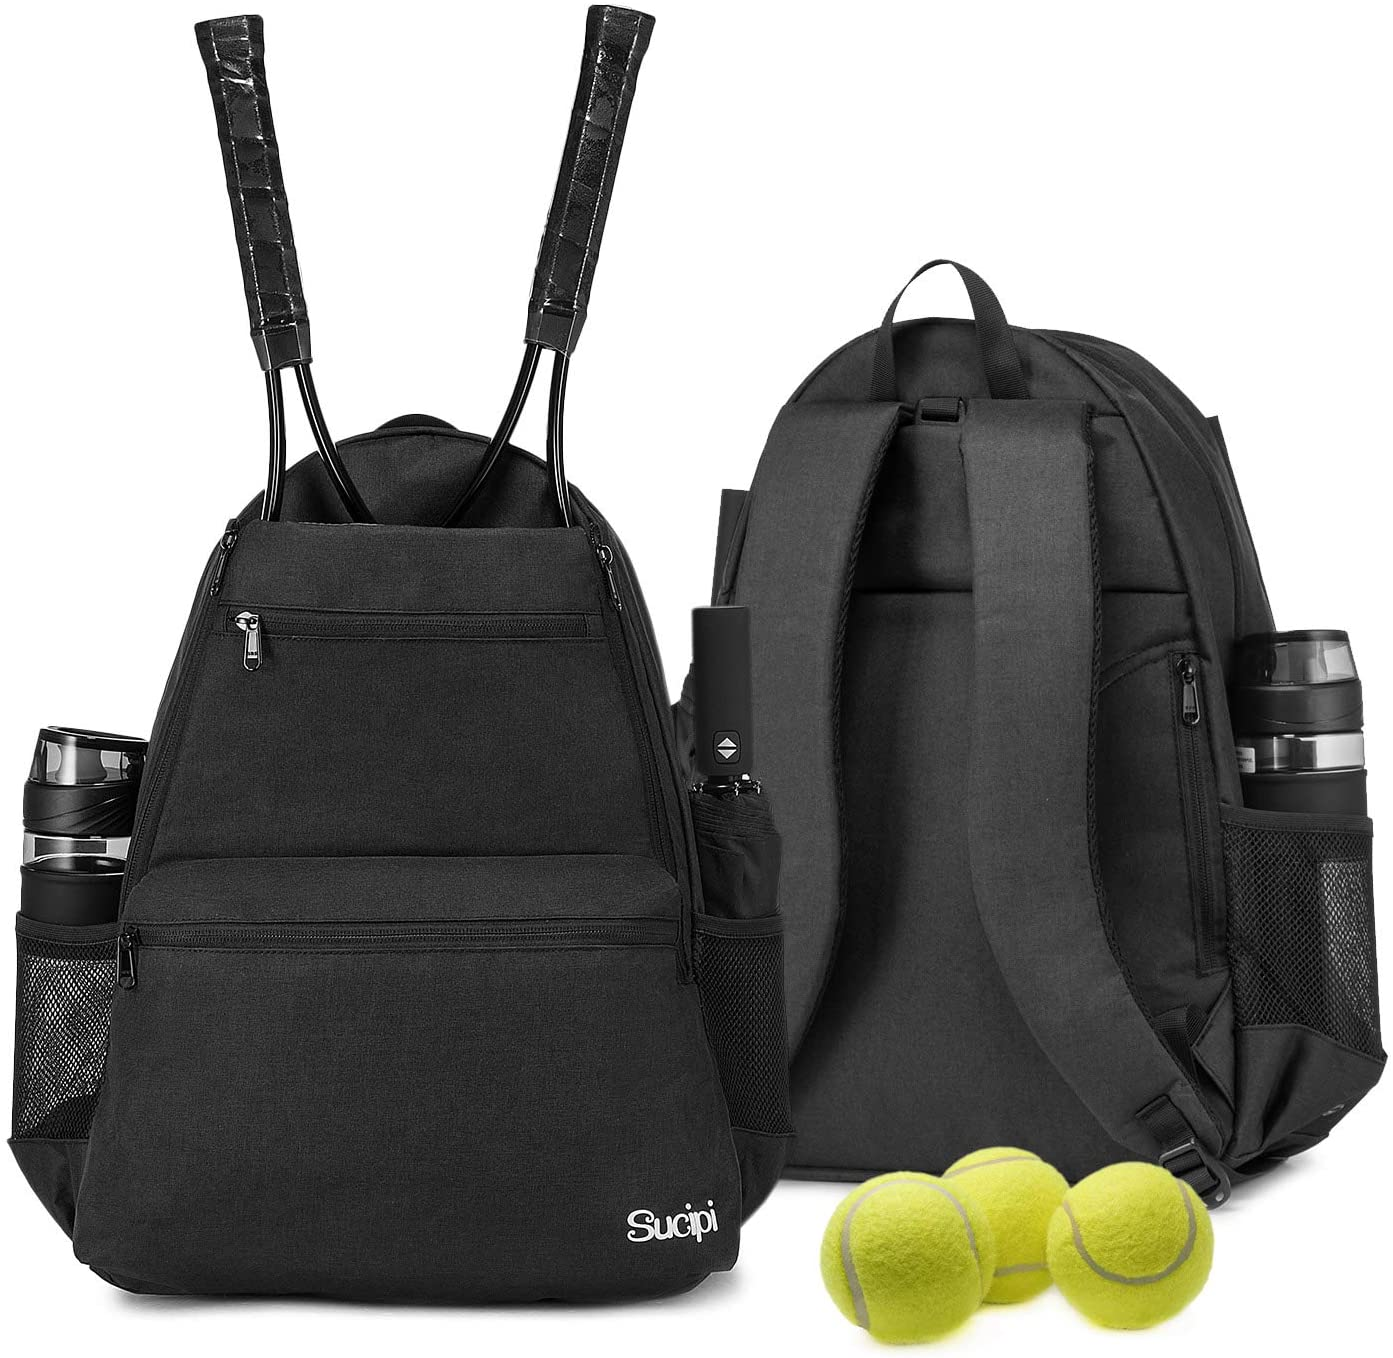 Sucipi Tennis Bag Professional Backpack Low price and Men Los Angeles Mall Women for